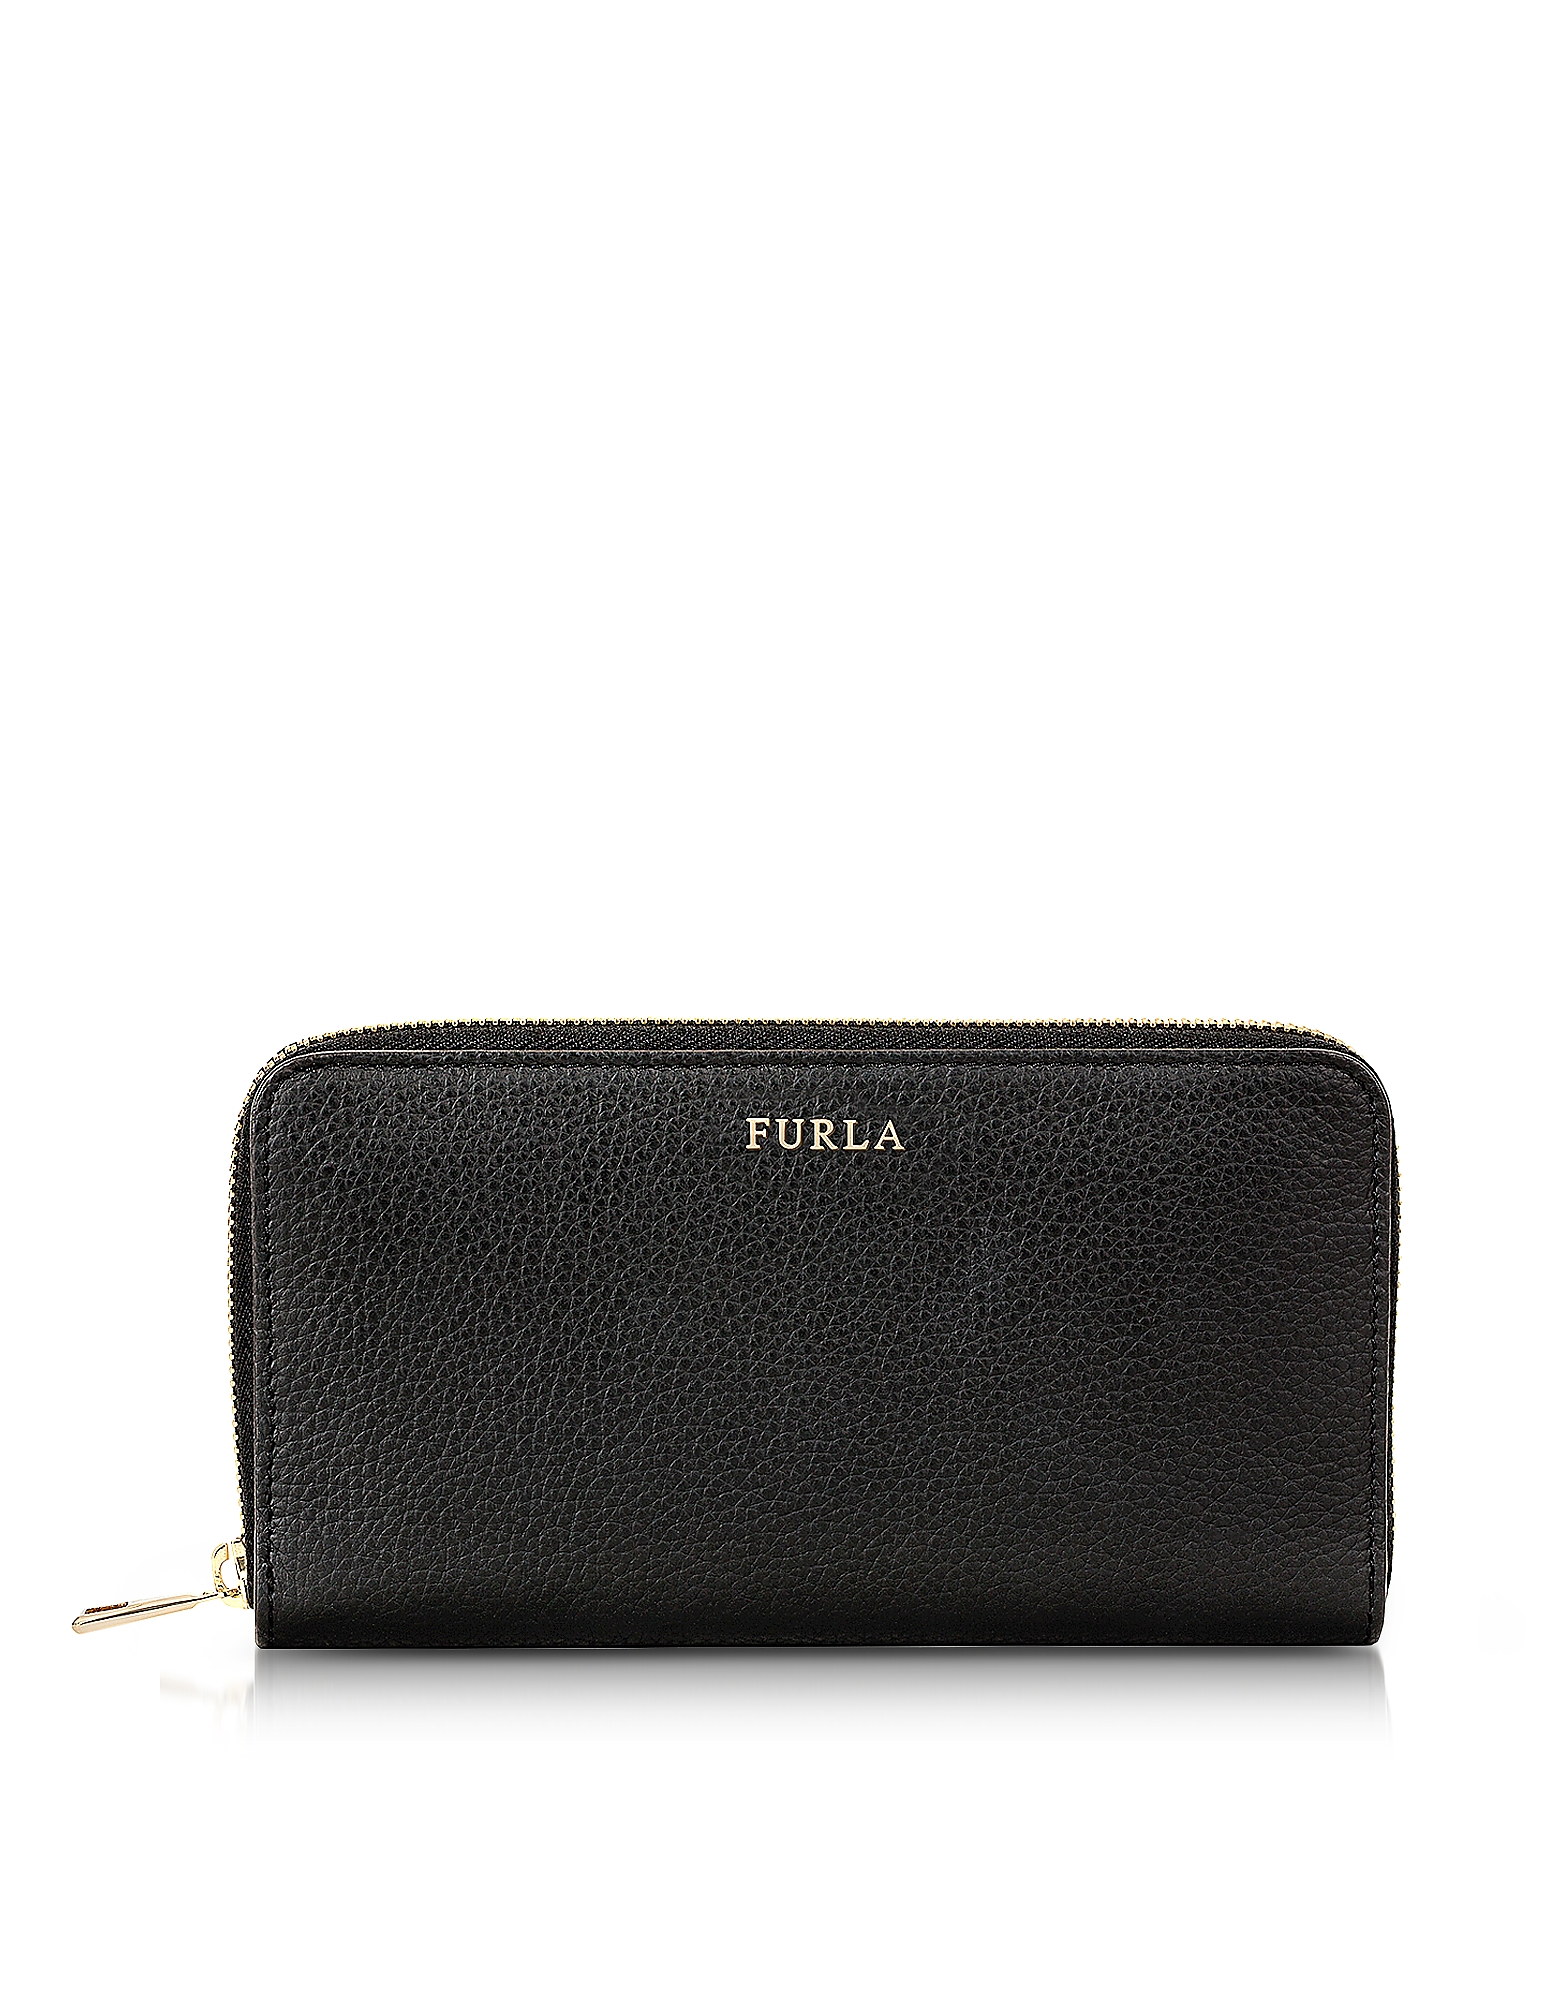 Furla Handbags, Onyx Babylon XL Zip Around Pebbled Leather Wallet